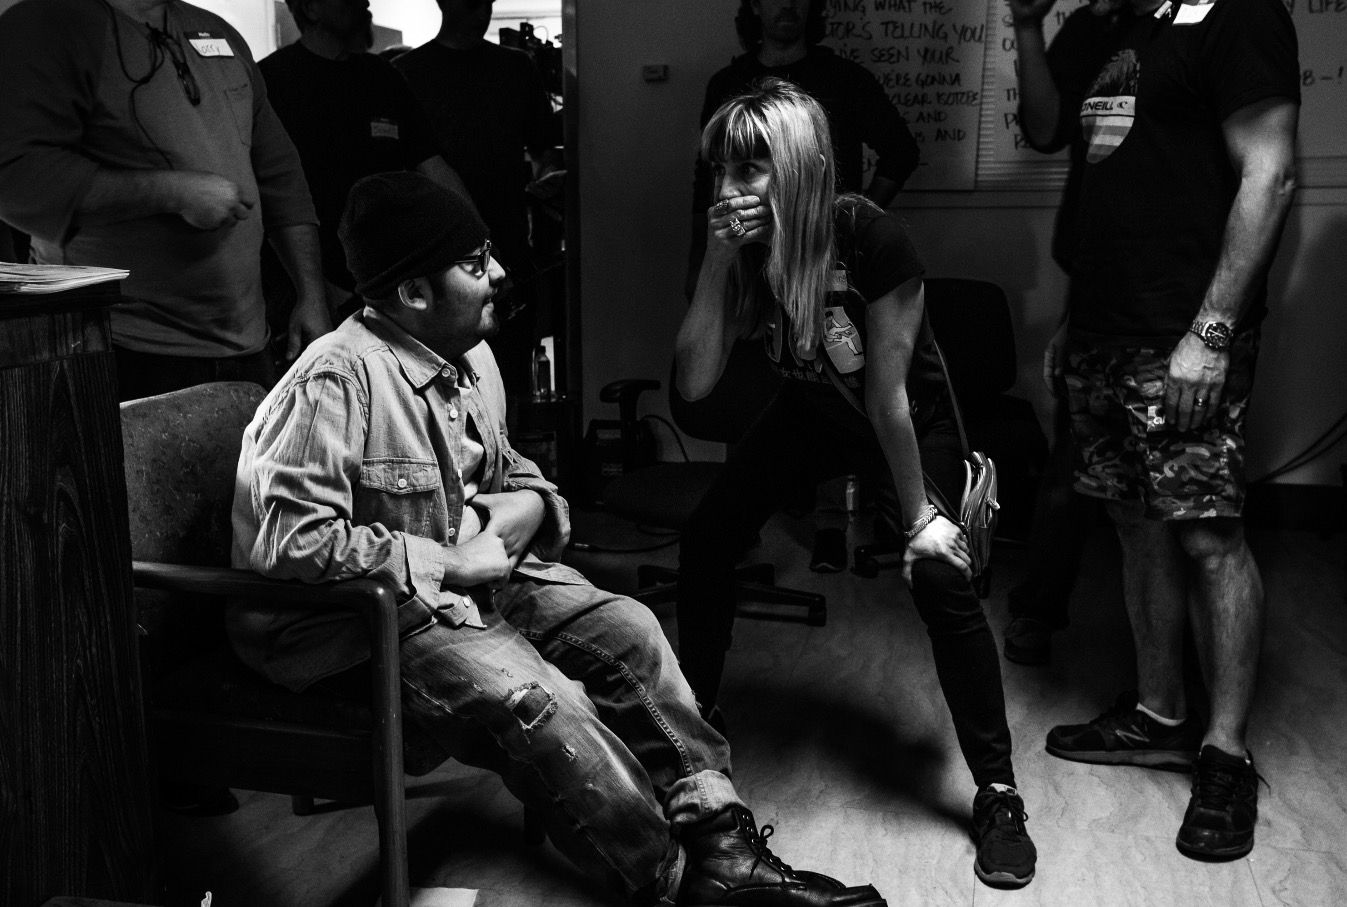 Anthony Conti |Catherine Hardwicke